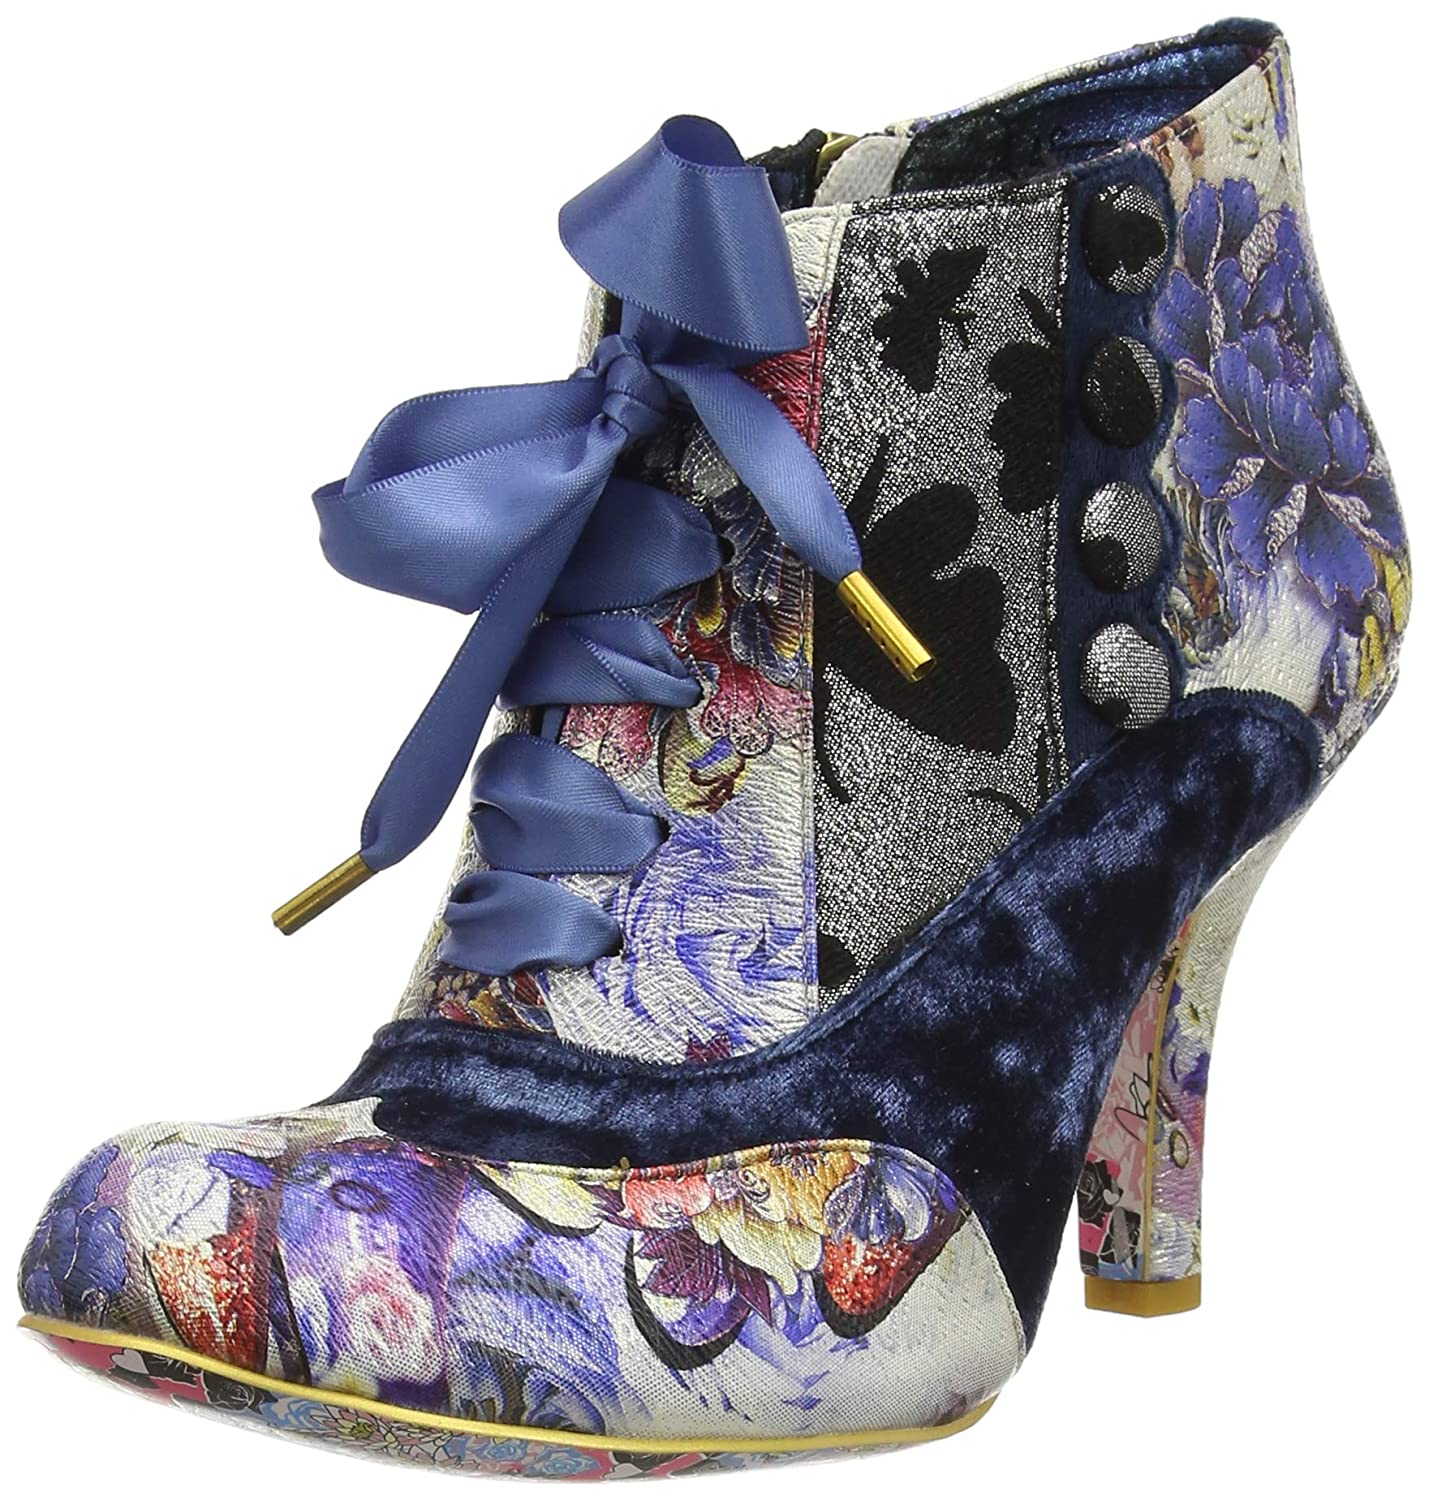 Irregular Choice Blair B01N131VHM Elfglow, Bottines Choice Femme Bleu (Blue Metallic Bottines U) b9a32b5 - conorscully.space